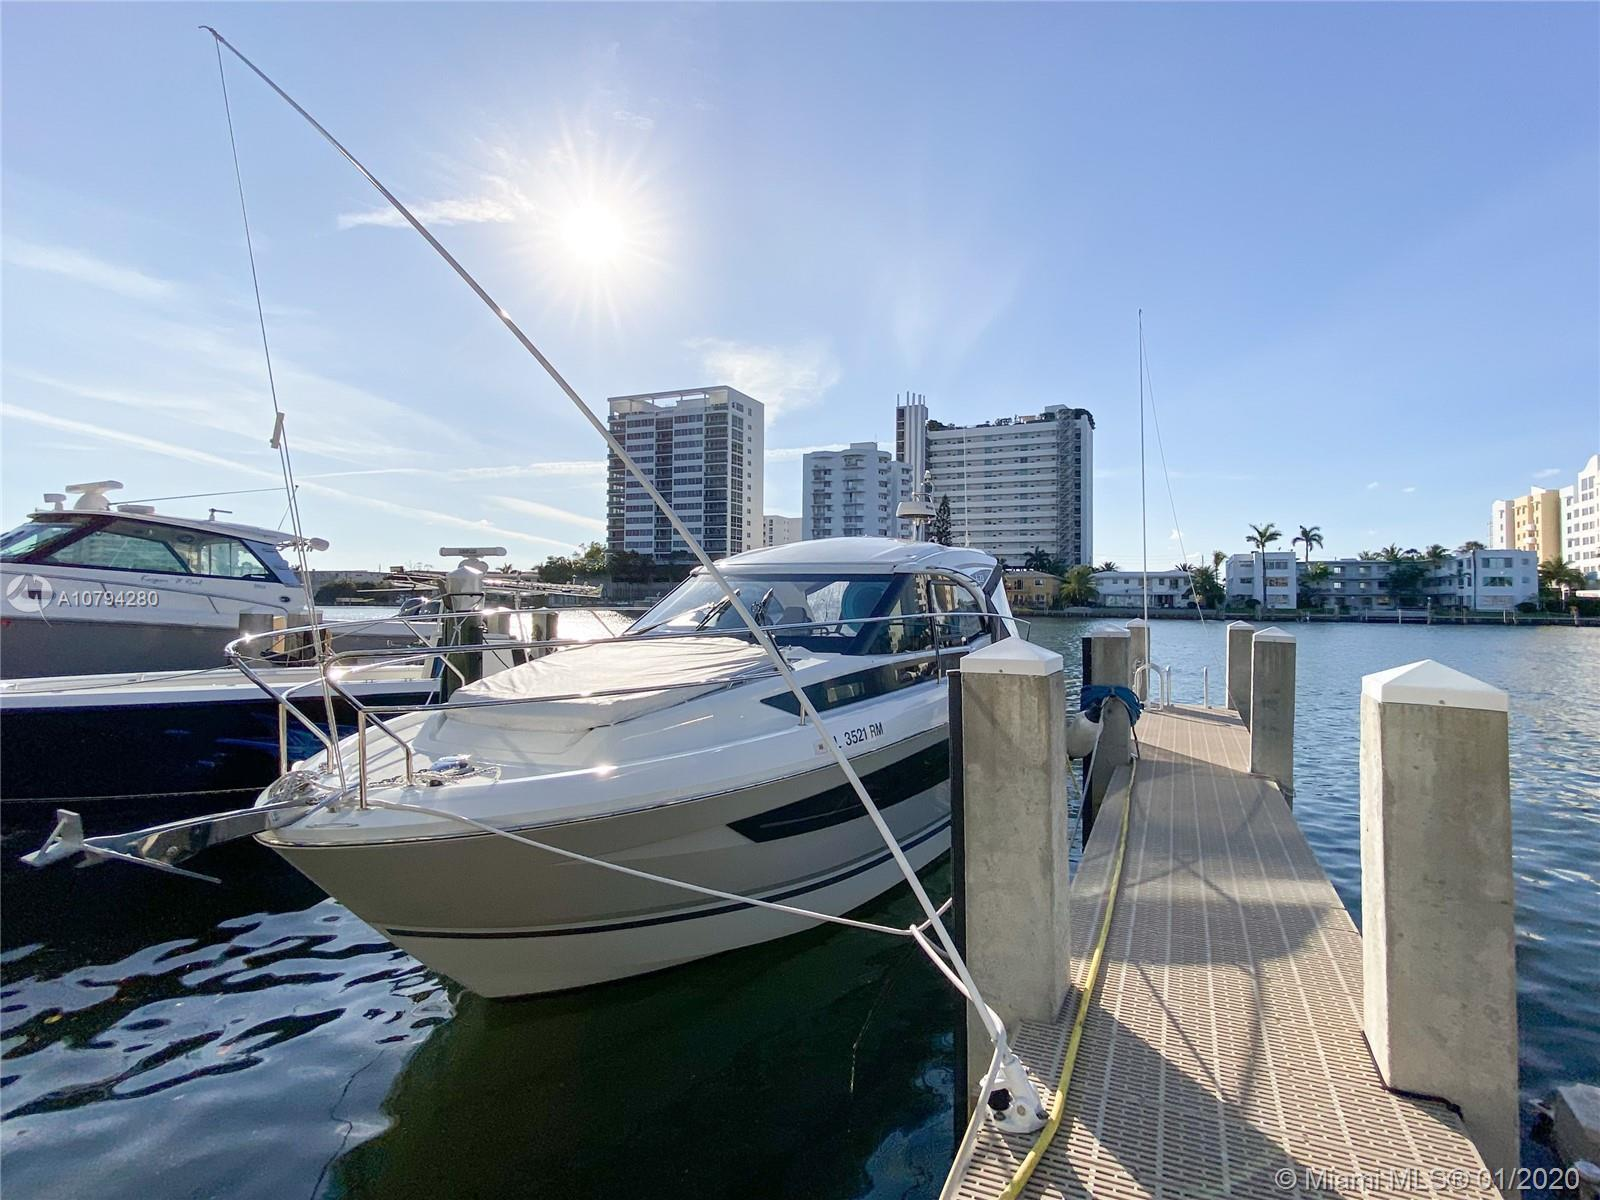 BOAT DOCK, 3 BEDROOM, 3 BATH, FULLY FURNISHED. Opportunity to Own your private Boat Dock in Miami an